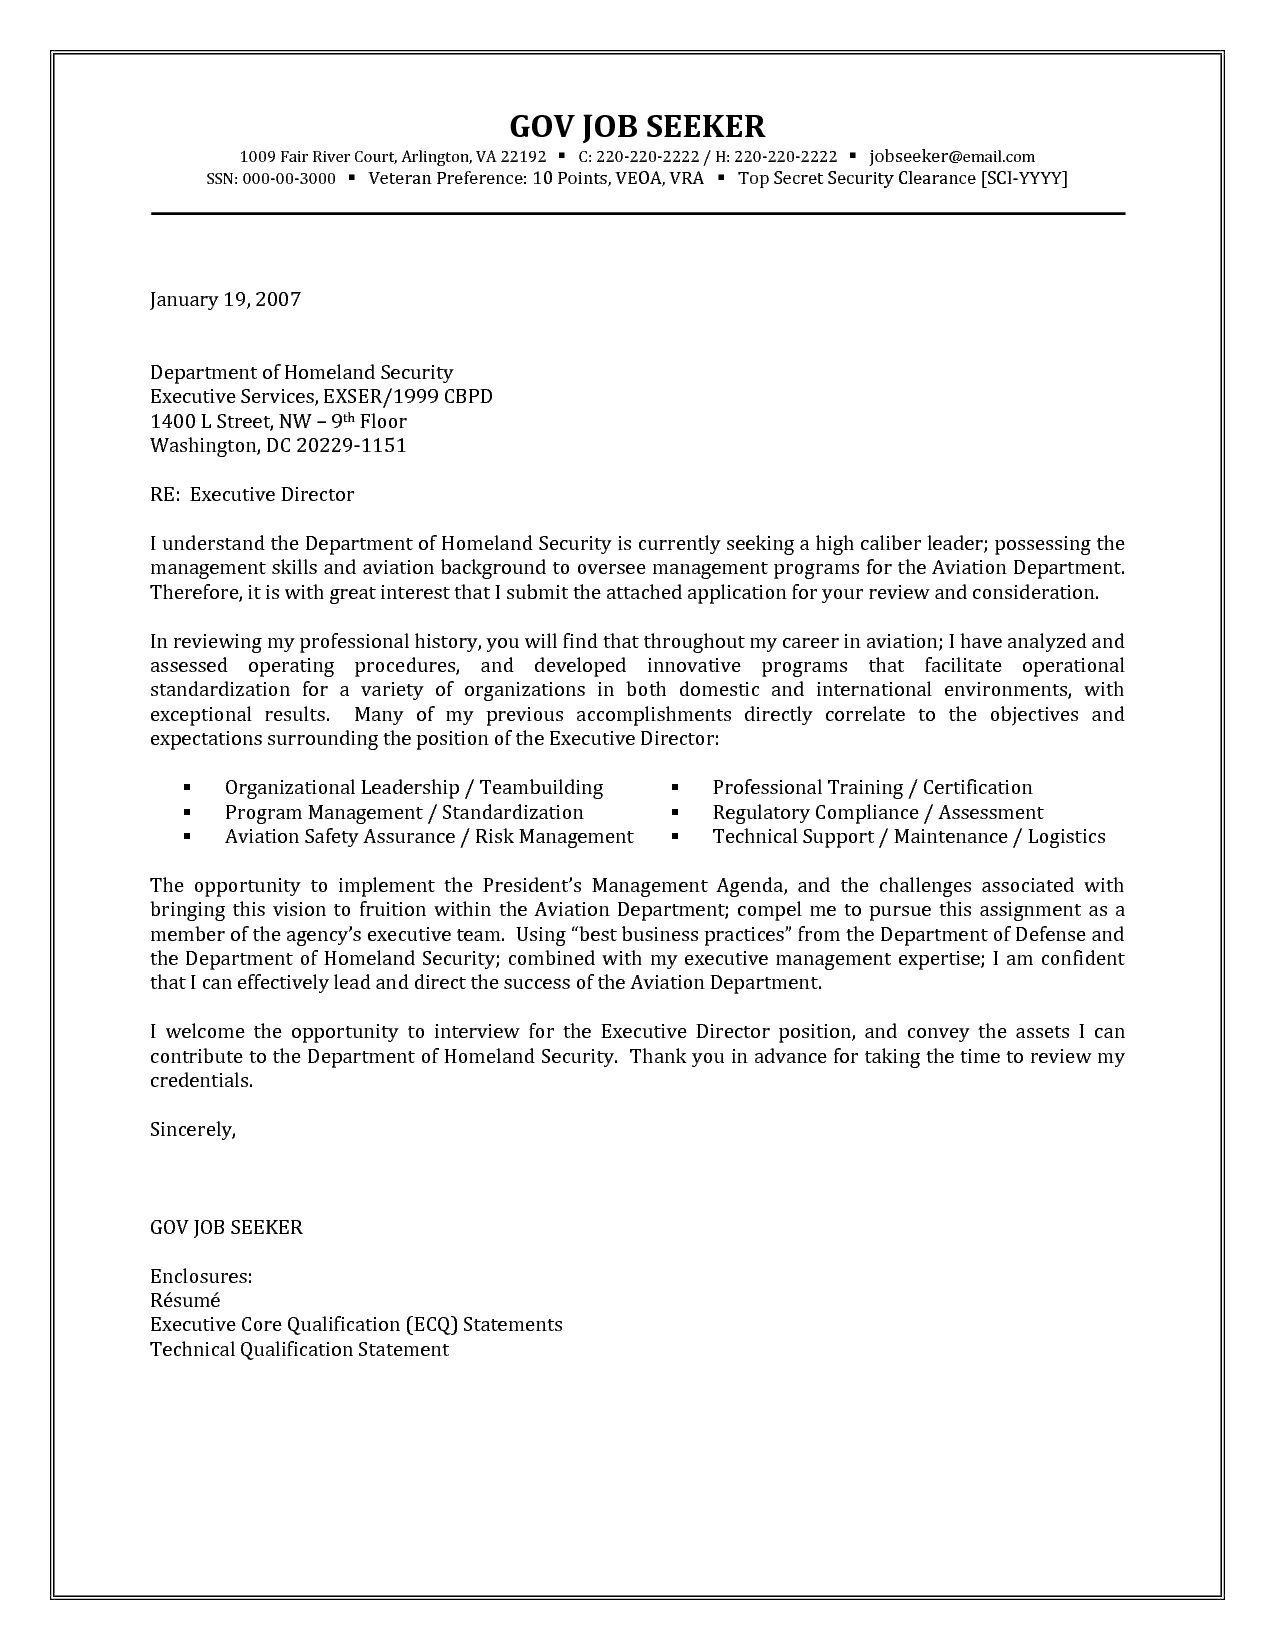 Government Resume Cover Letter Examples   Http://jobresumesample.com/99/  Sample Government Resume